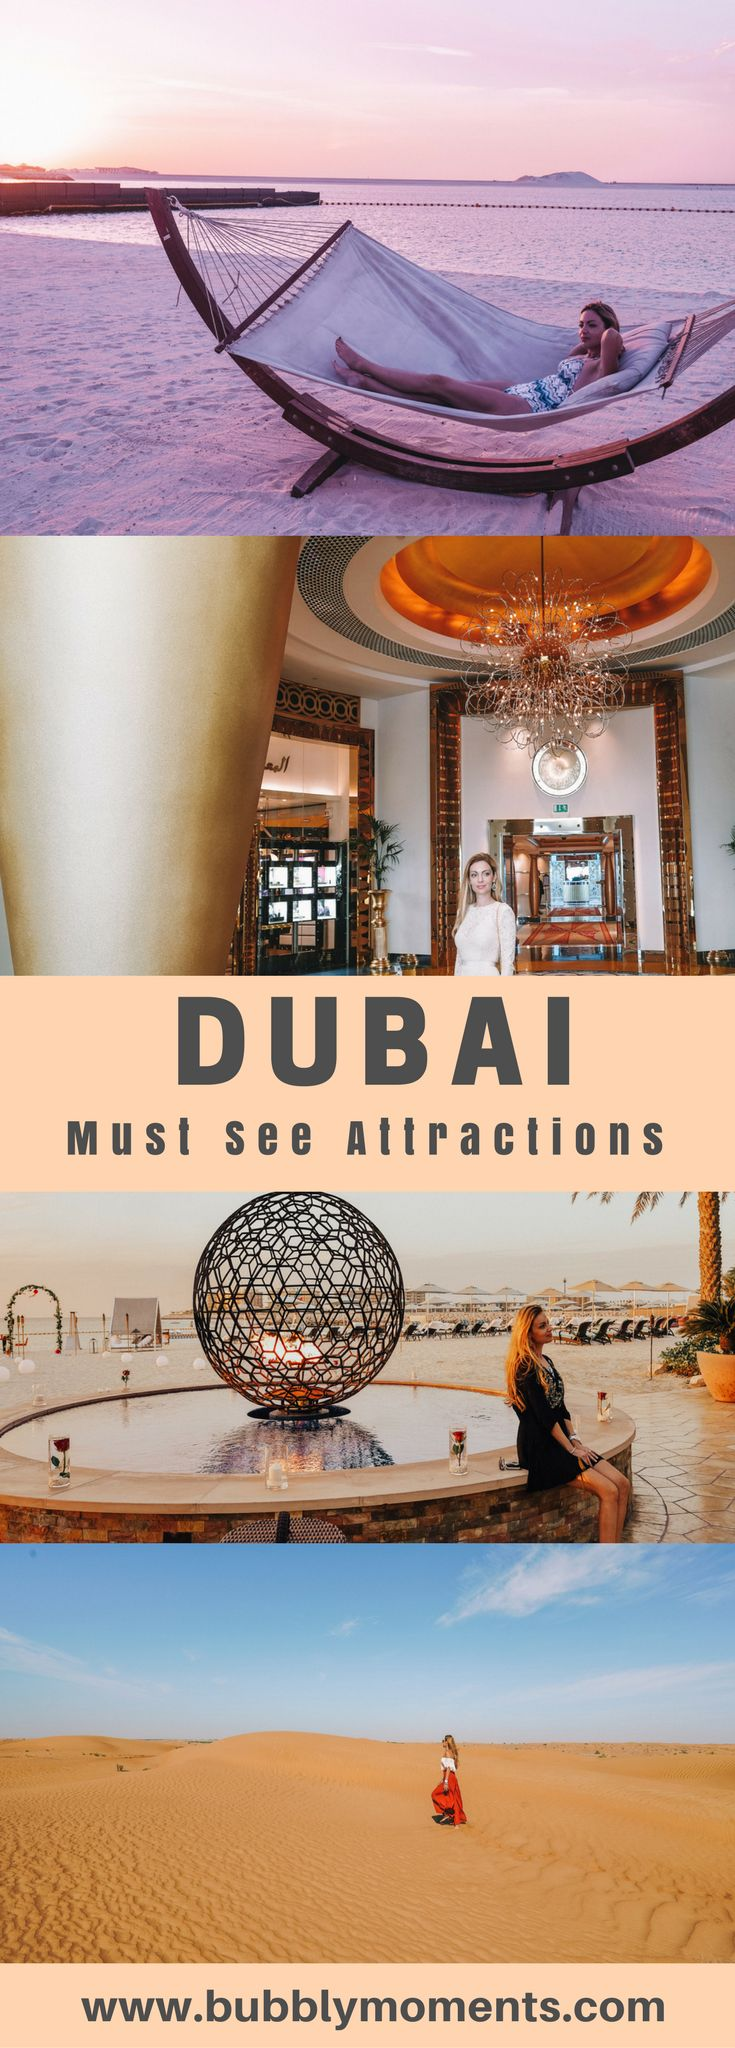 3 Days in Dubai – The Best Spots to See  #Dubai #Dessert #MiracleGarden #BurjKhalifa #ArabianAdventures #Travel #Travelphotography #Bedoins | Travel | Travel Photography | Bubbly Moments | Burj Al Arab | Burj Khalifa | Dubai Marina | Miracle Garden |Things to do in Dubai | Where to go in Dubai | City of Contrasts | Exotic Beaches | Dubai Tourist Attractions | Bubbly Moments